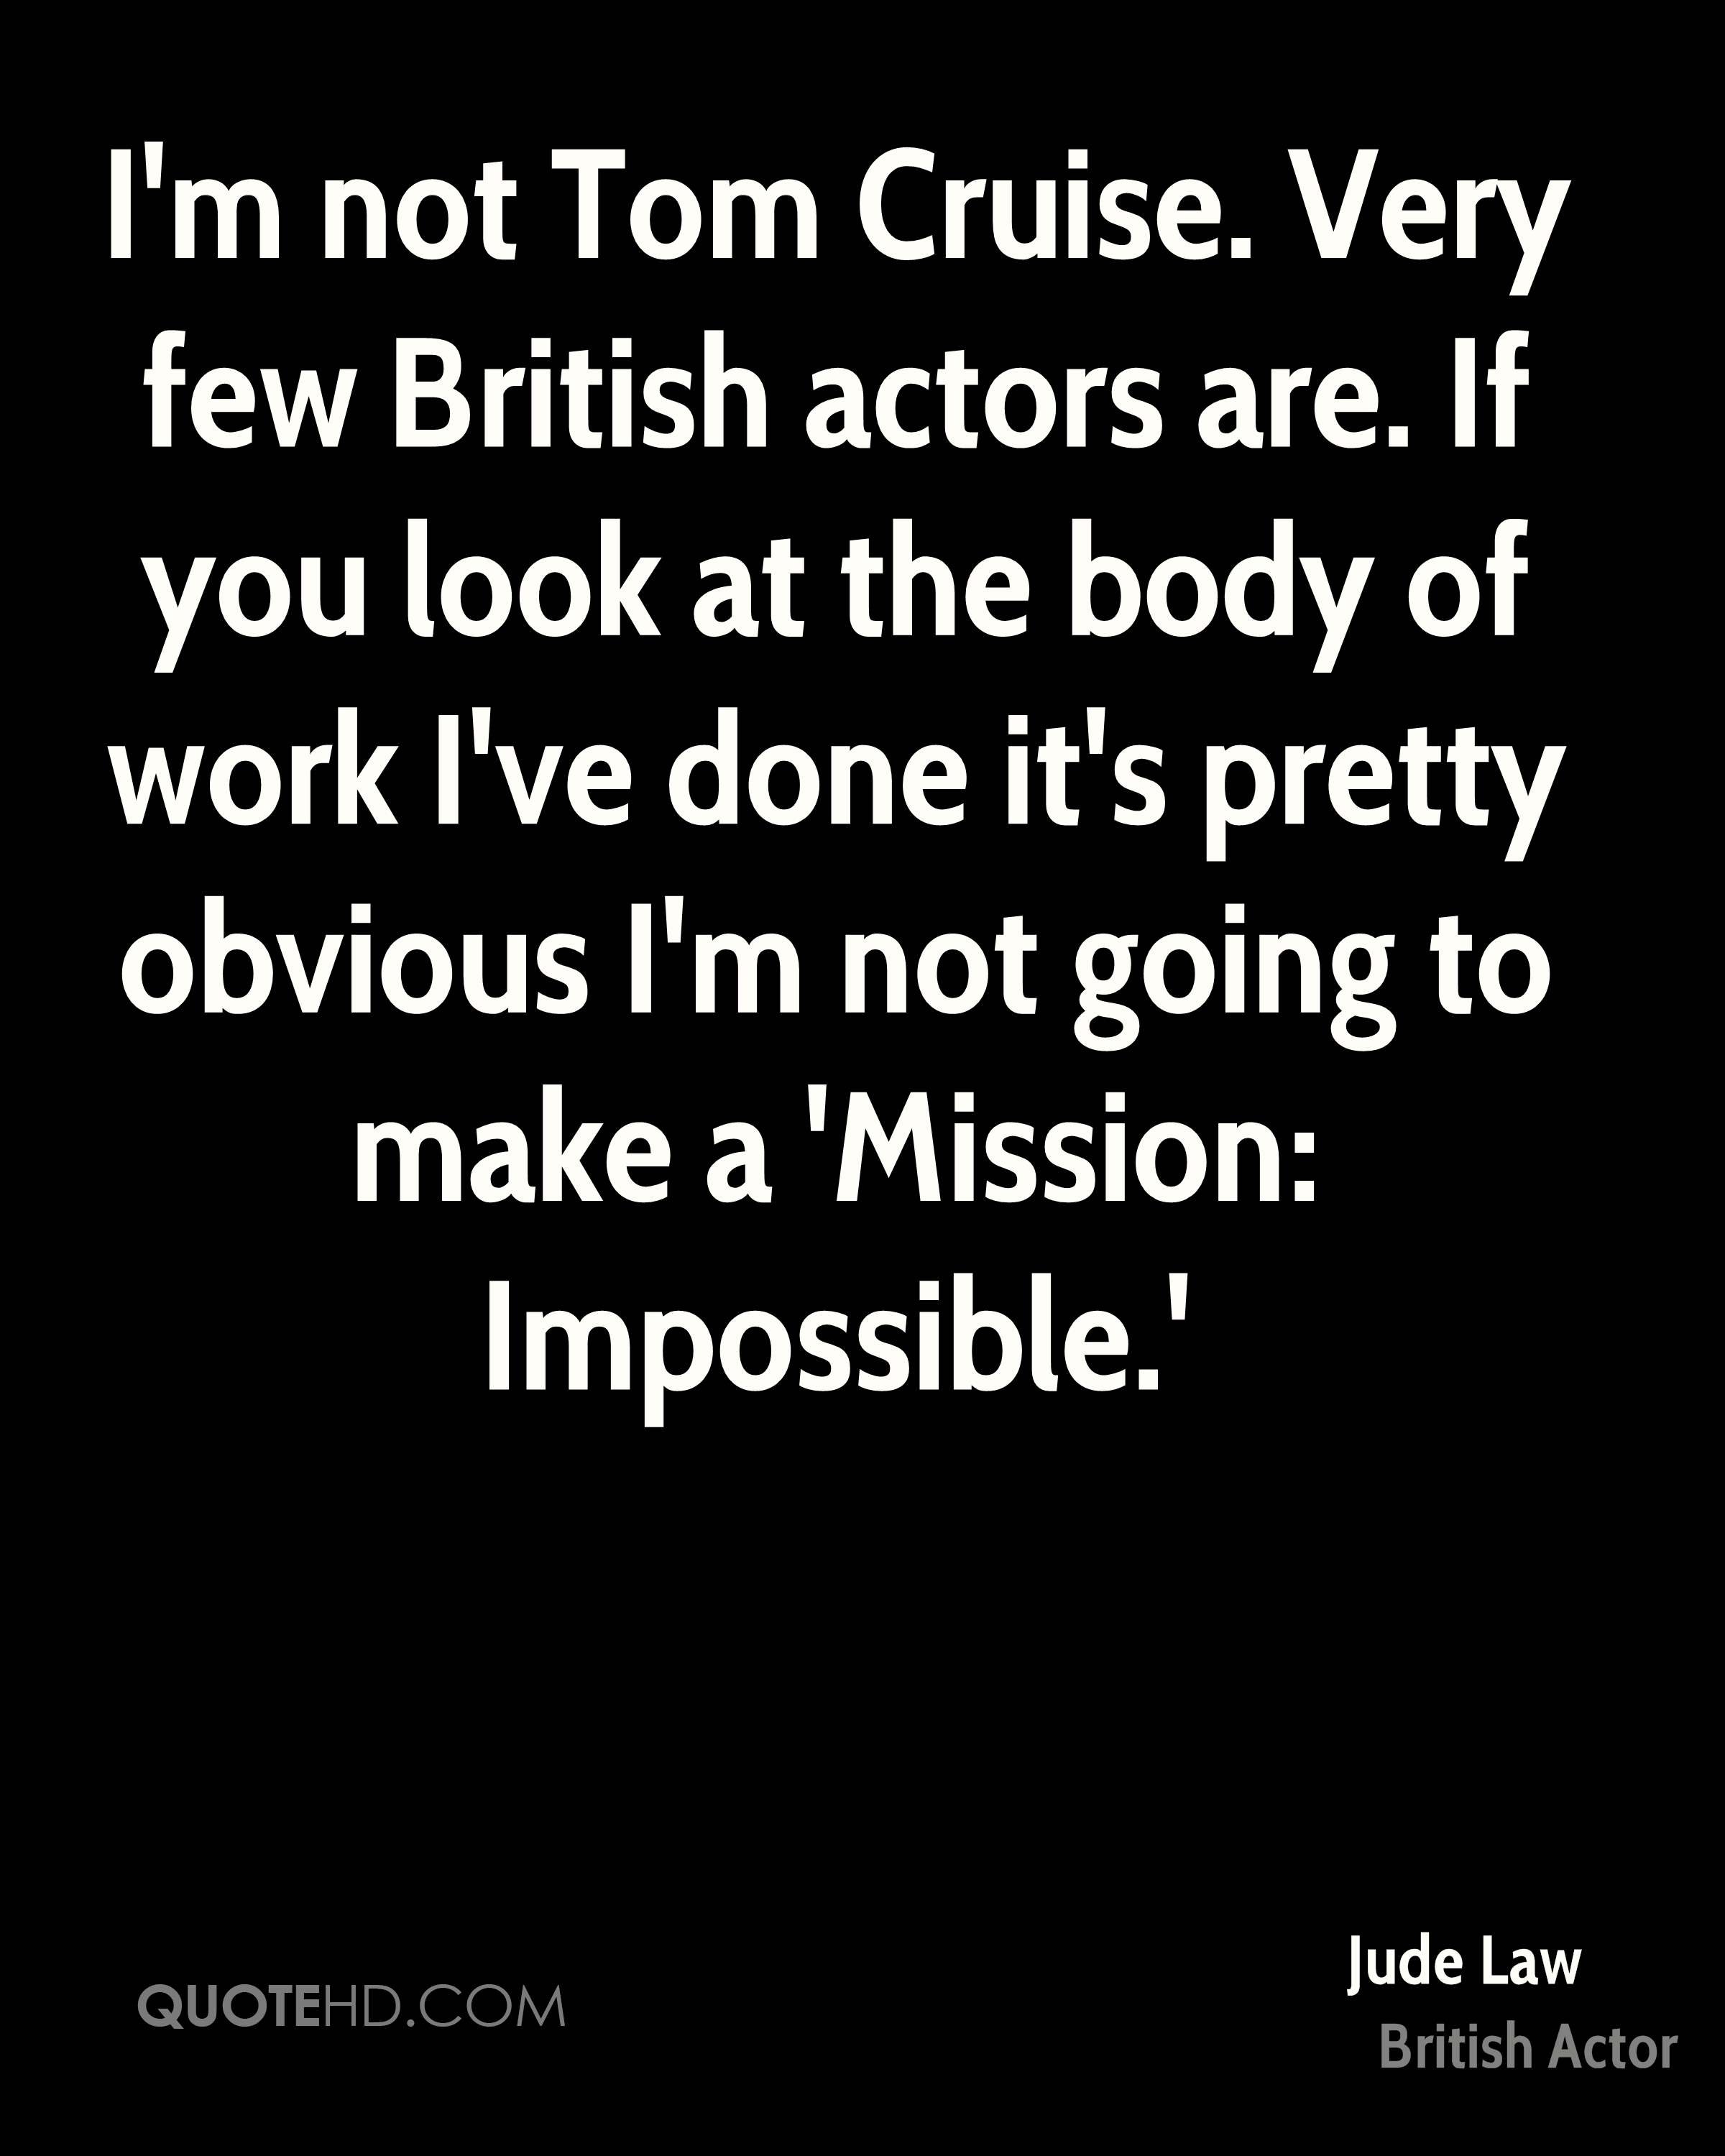 I'm not Tom Cruise. Very few British actors are. If you look at the body of work I've done it's pretty obvious I'm not going to make a 'Mission: Impossible.'